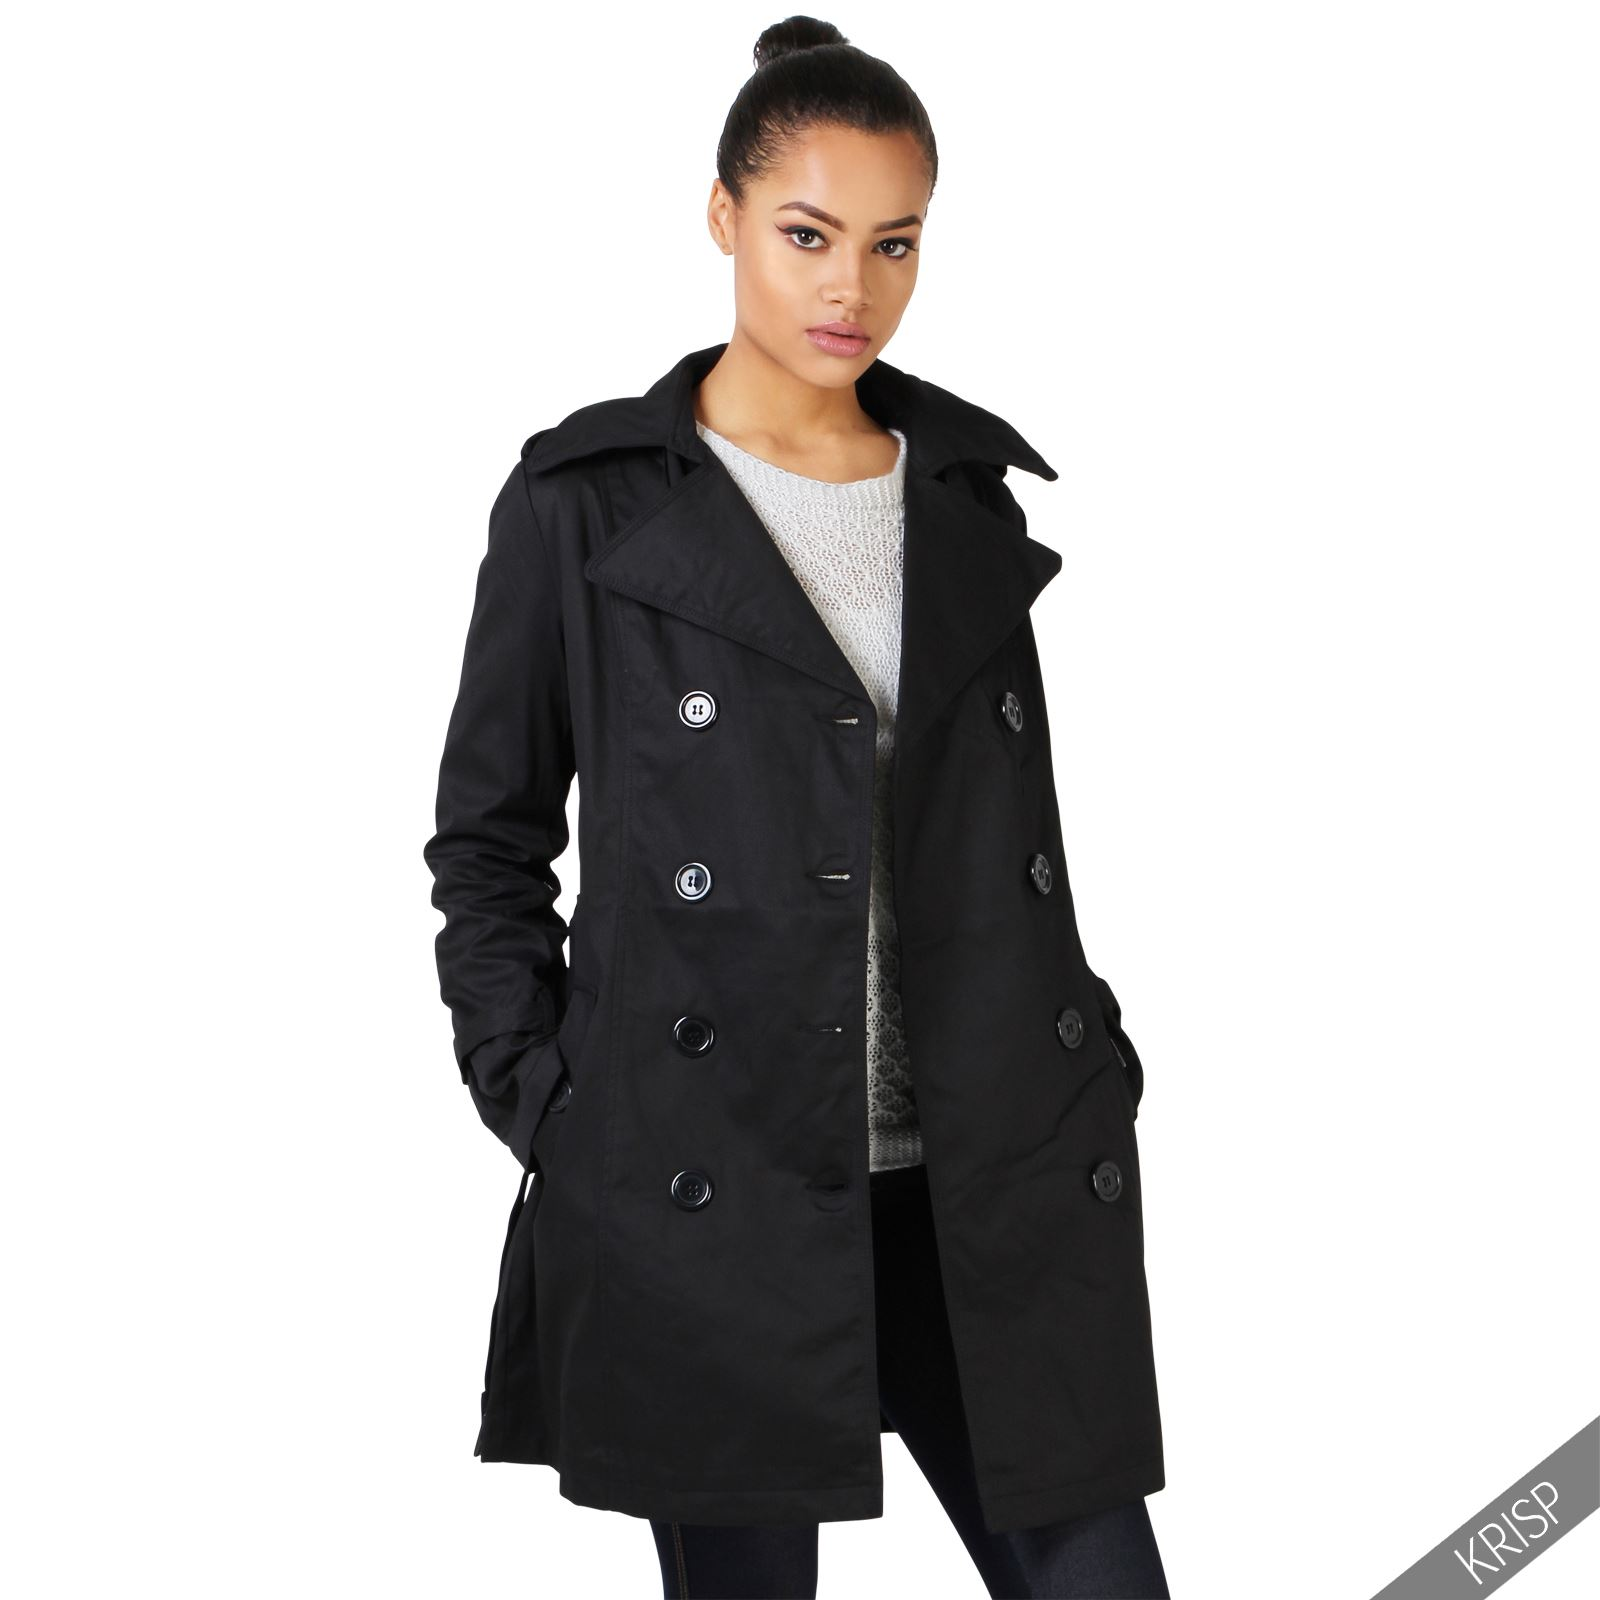 damen klassischer trenchcoat kurzmantel winter jacke. Black Bedroom Furniture Sets. Home Design Ideas